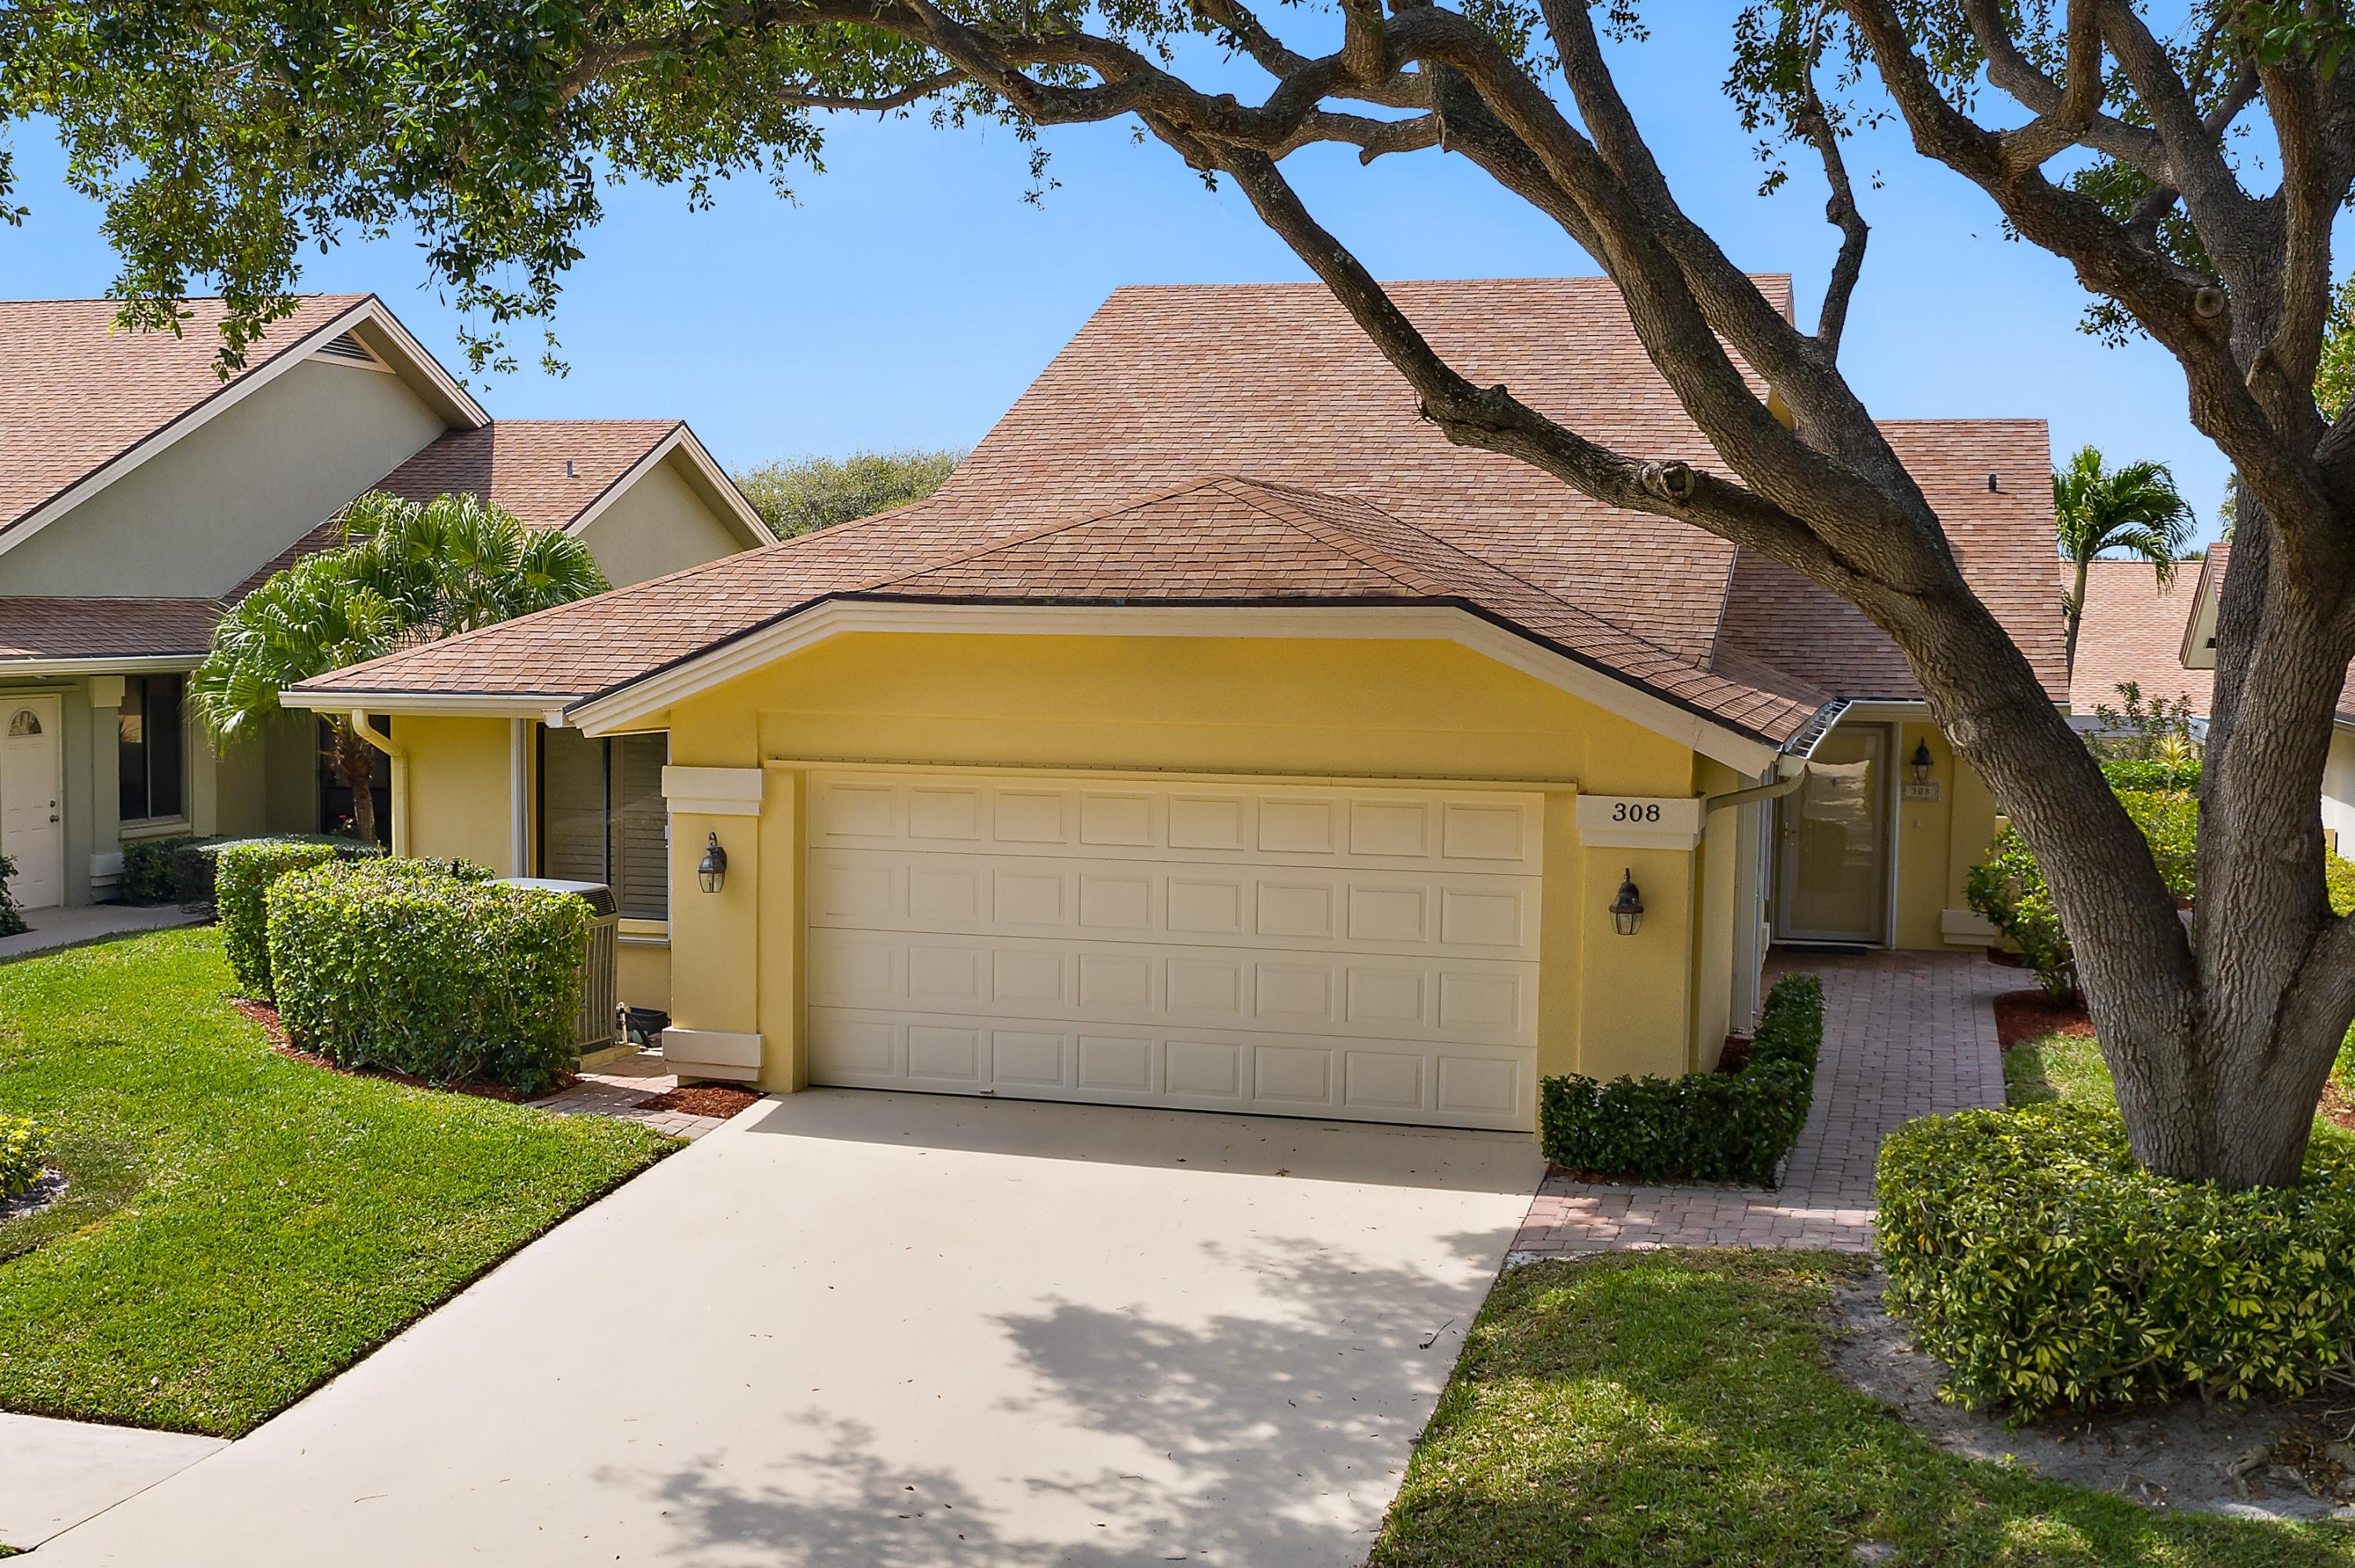 Home for sale in ridge at the bluffs Jupiter Florida